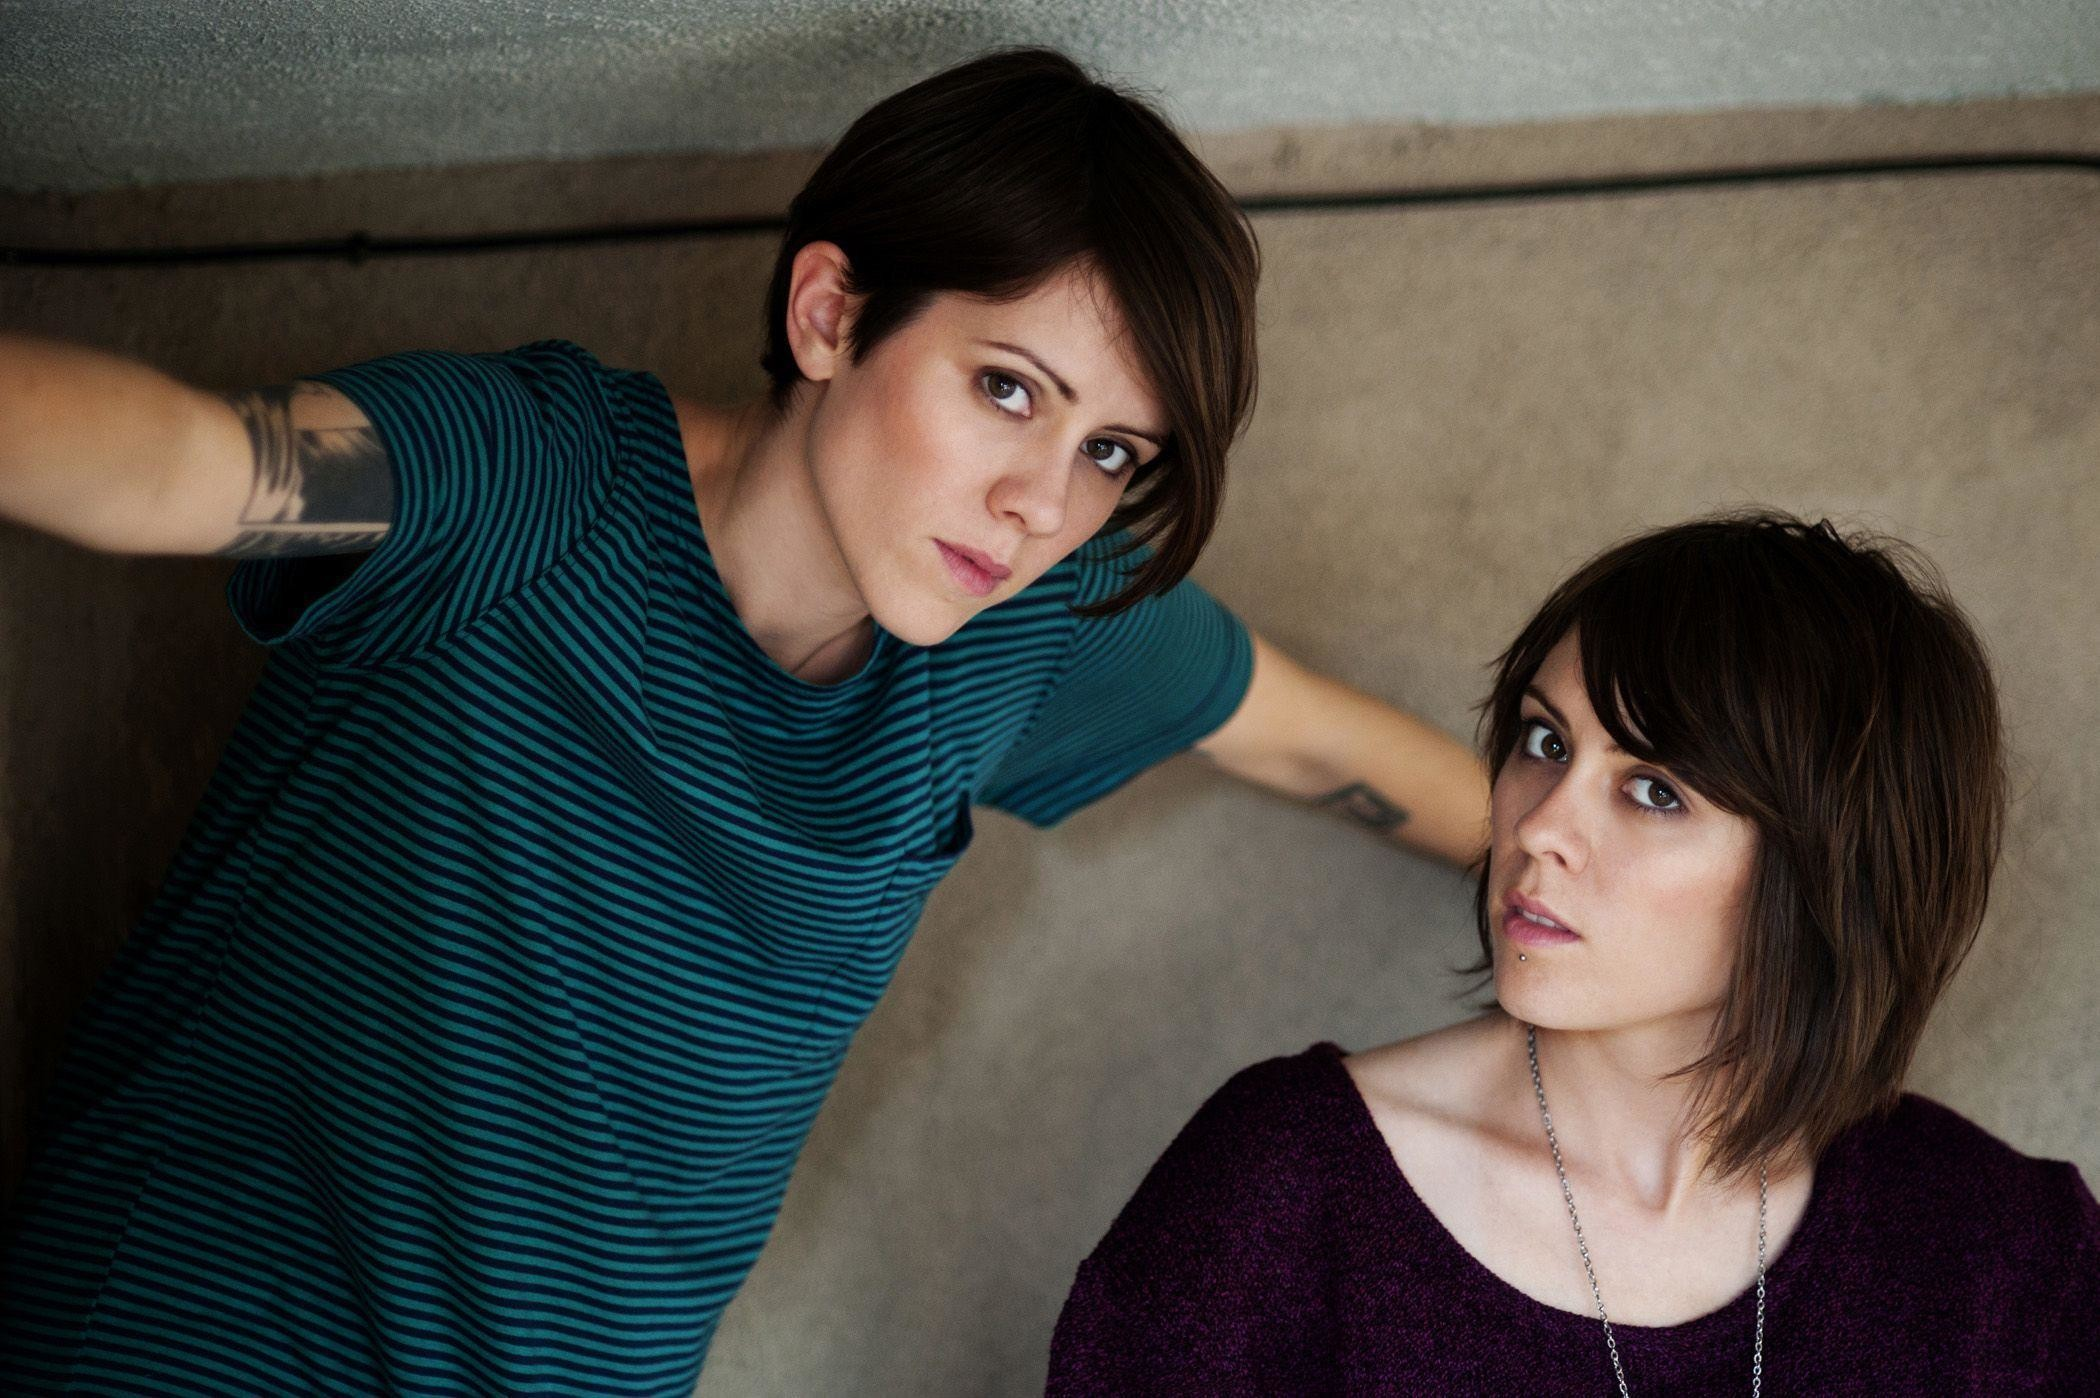 2100x1398 Pix For > Tegan And Sara Wallpaper Closer